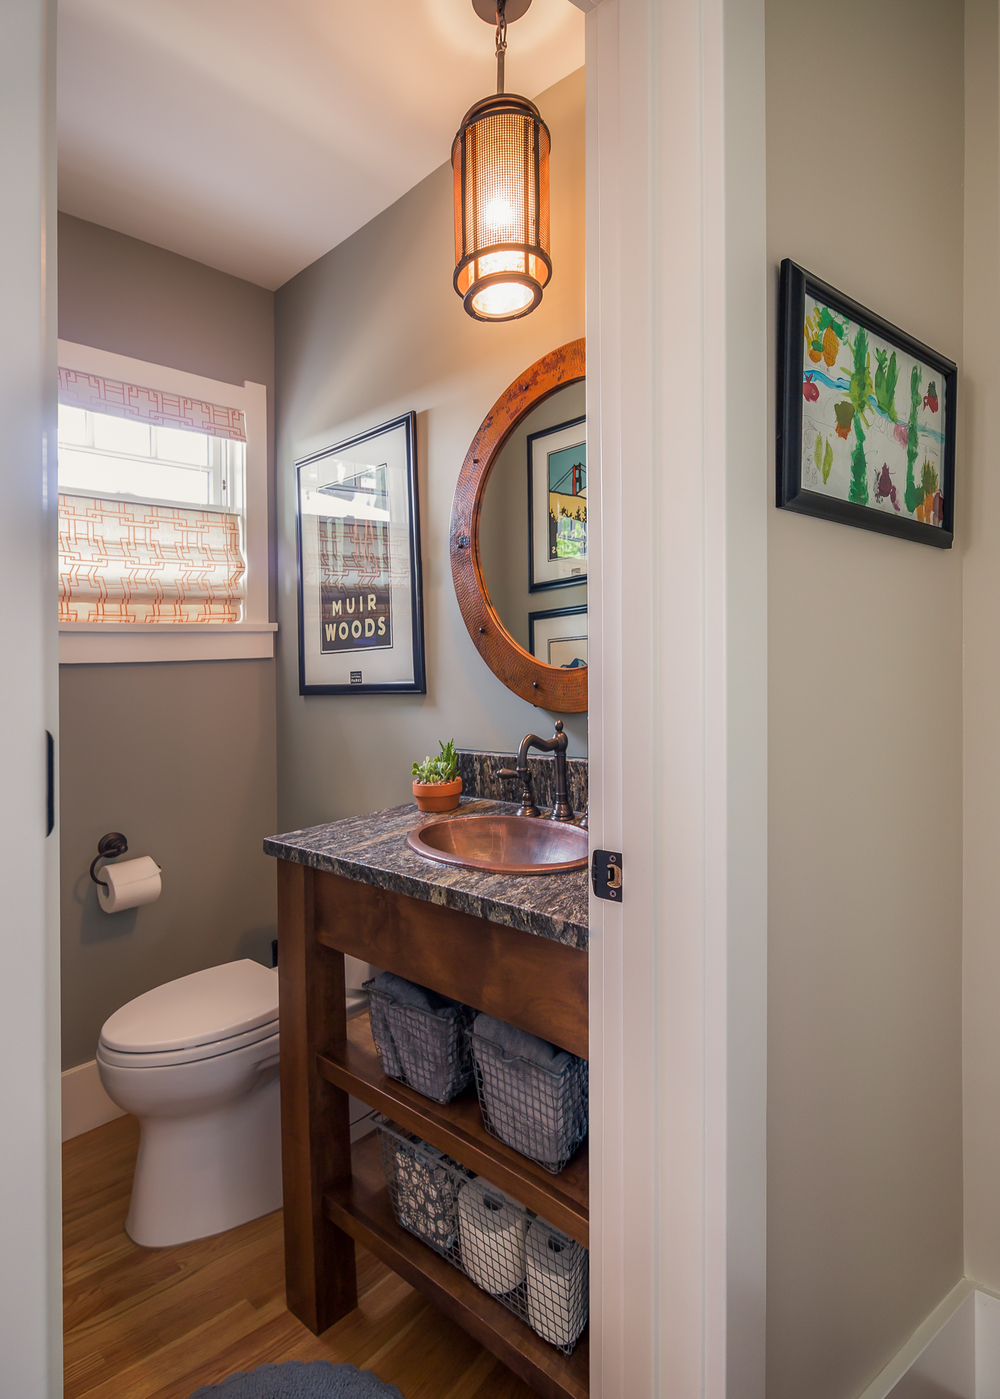 The first floor powder room has a custom vanity, copper sink, mirror and custom roman blind.